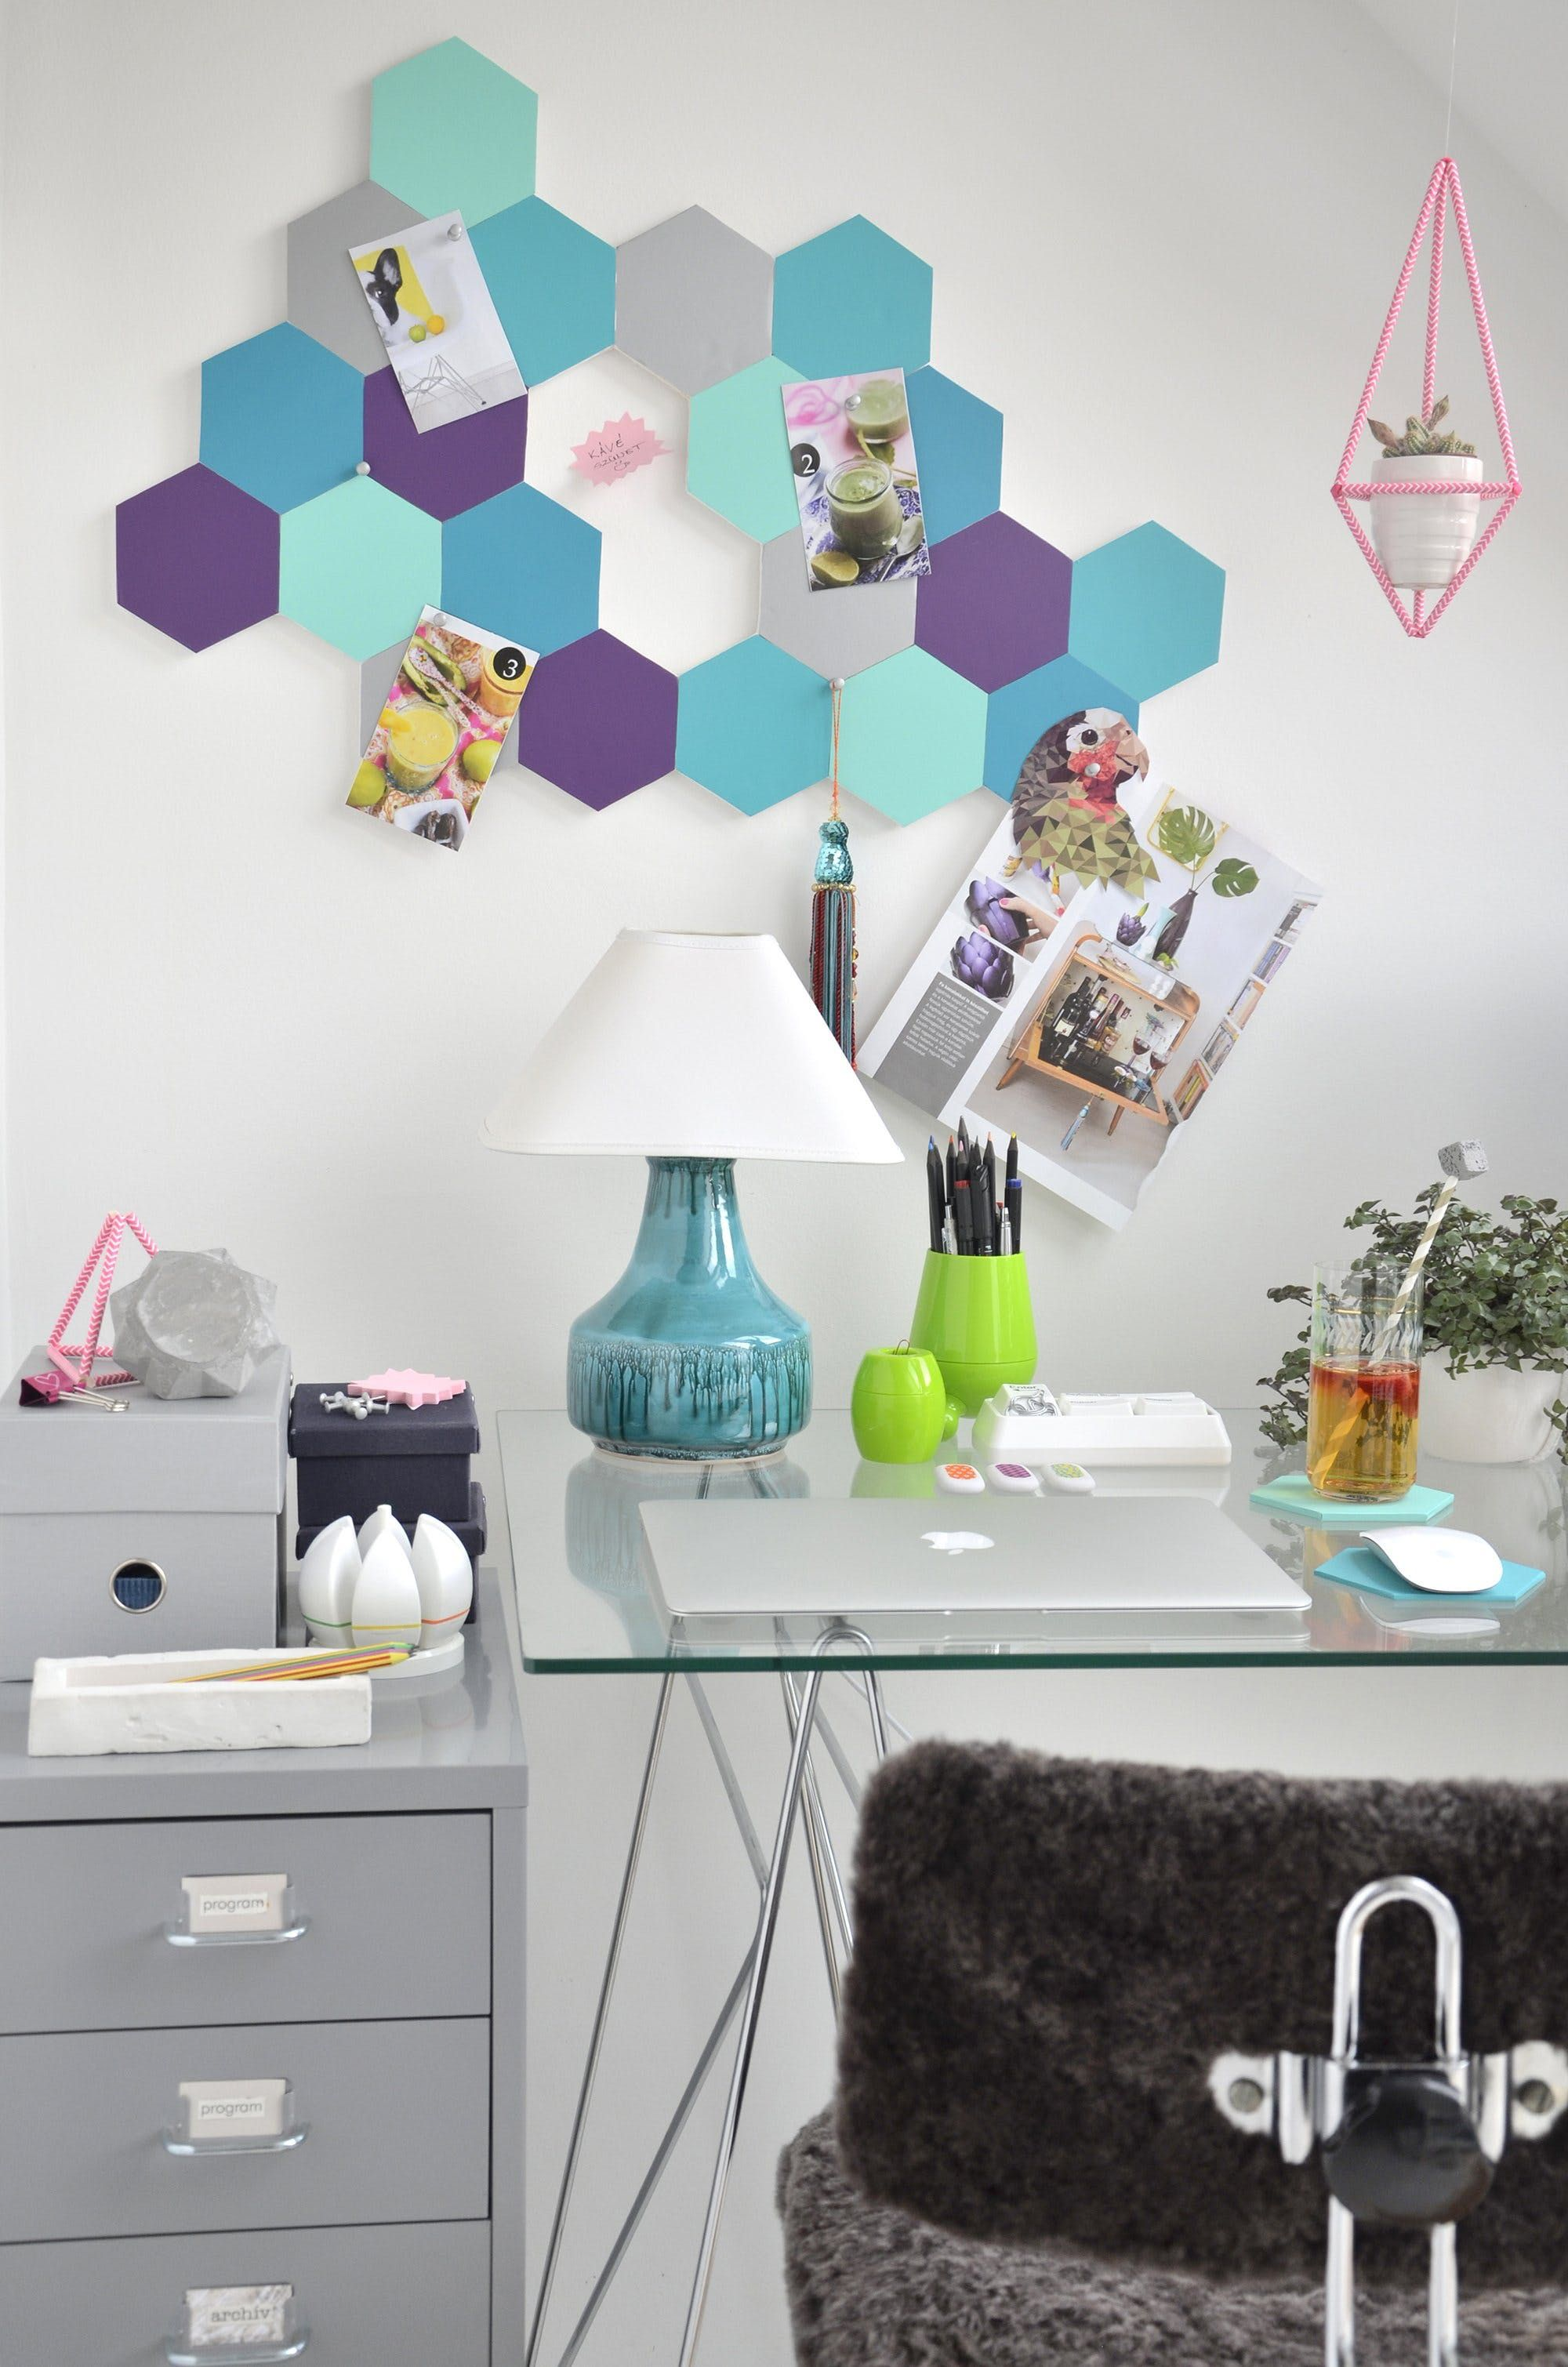 Objet A Faire Soi Meme Colorful Easy Diy Project Cute Honeycomb Pin Board Kids Room